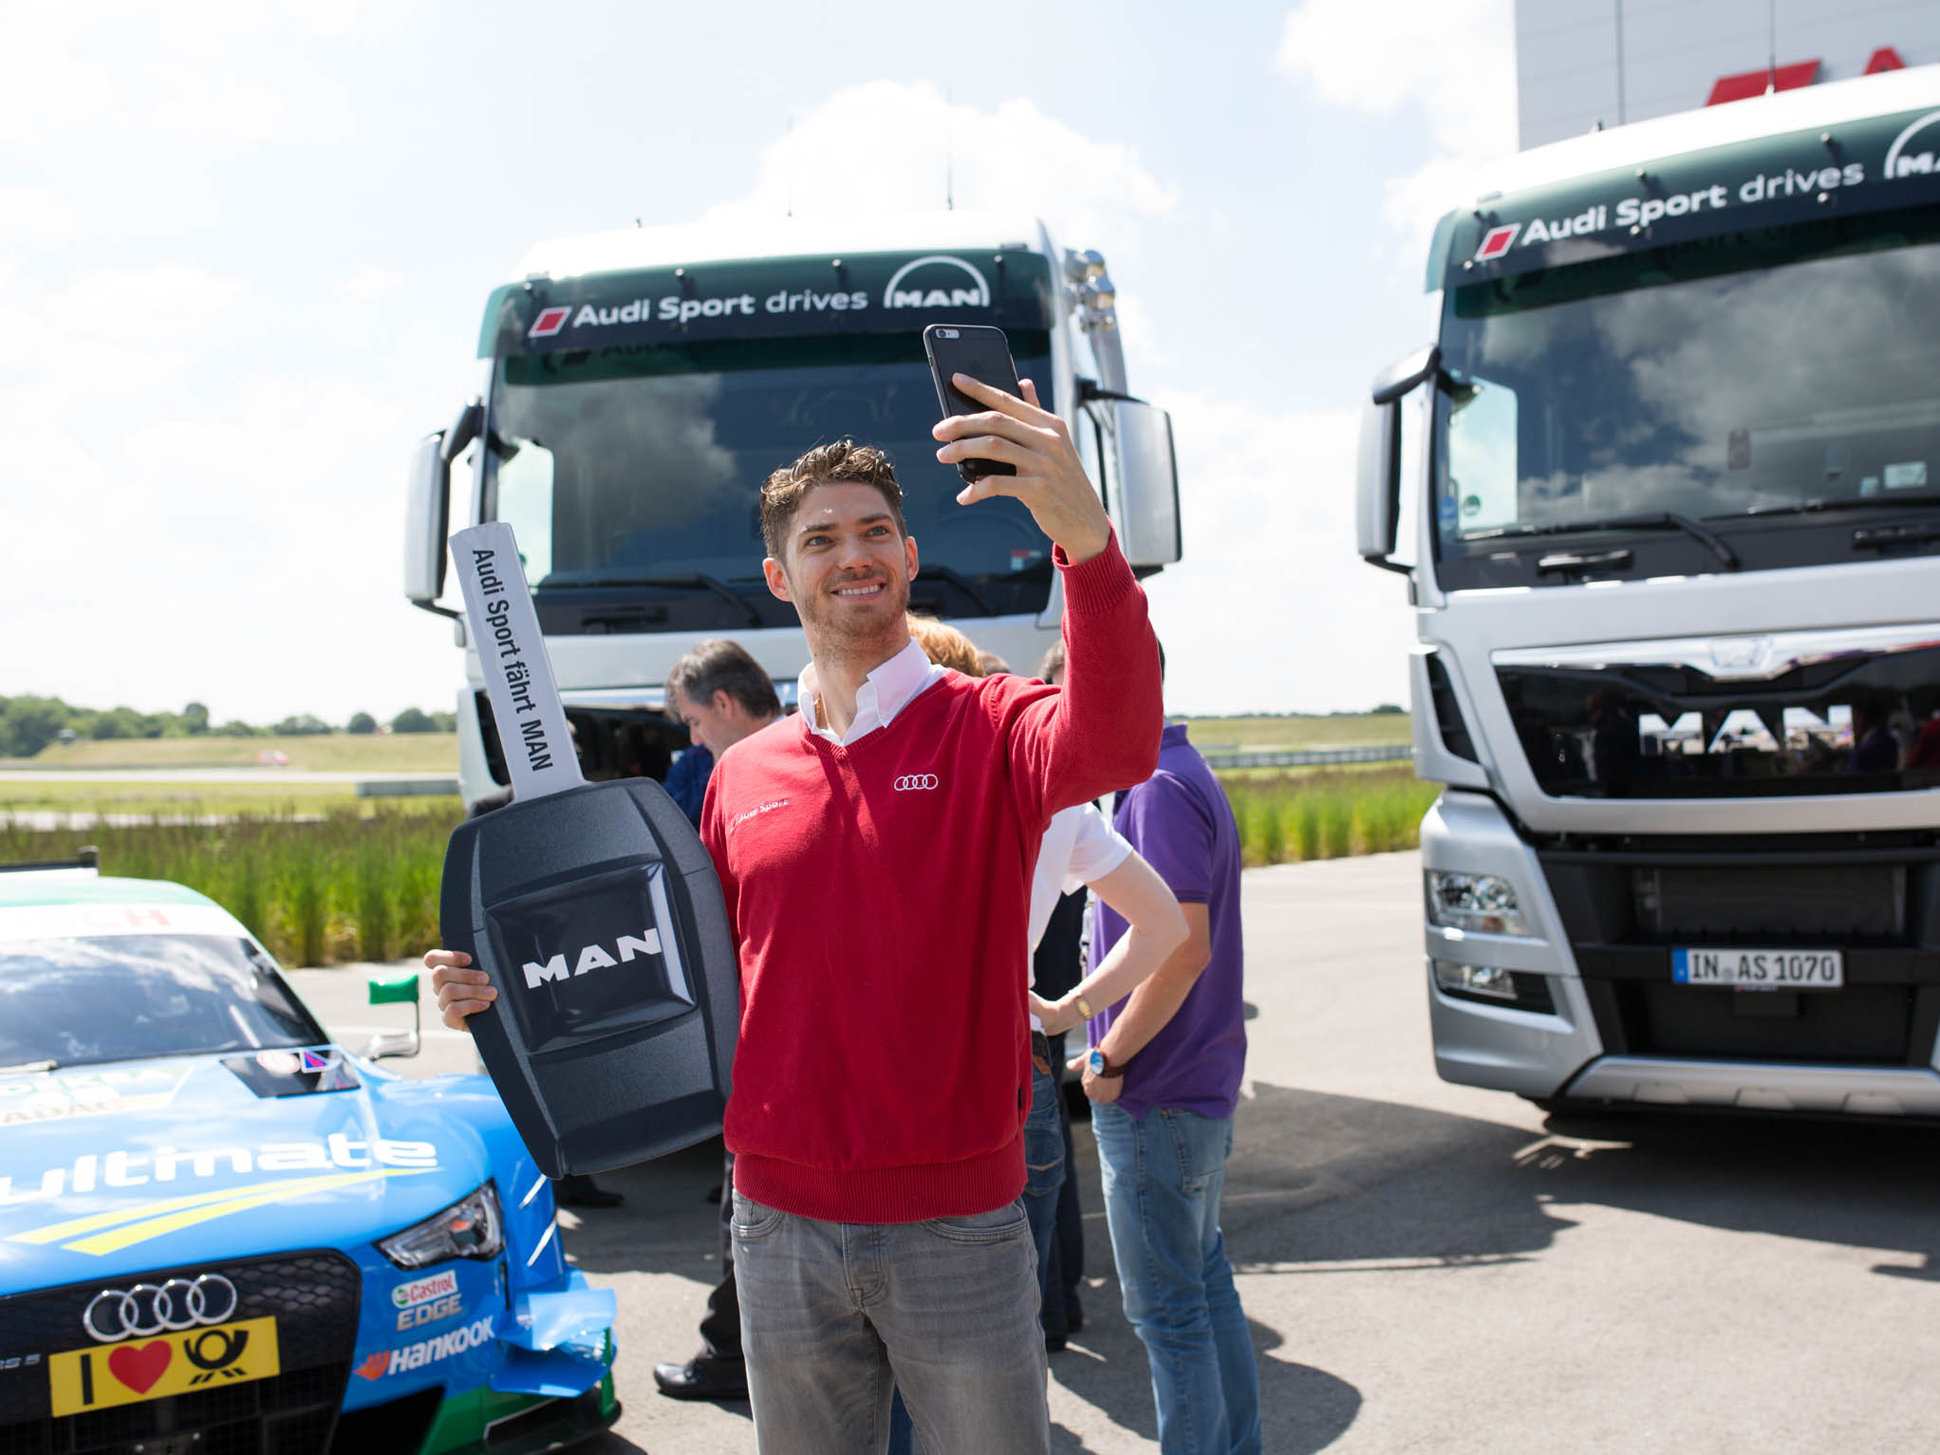 Edoardo Mortara, DTM driver of Audi Sport is happy about the new trucks